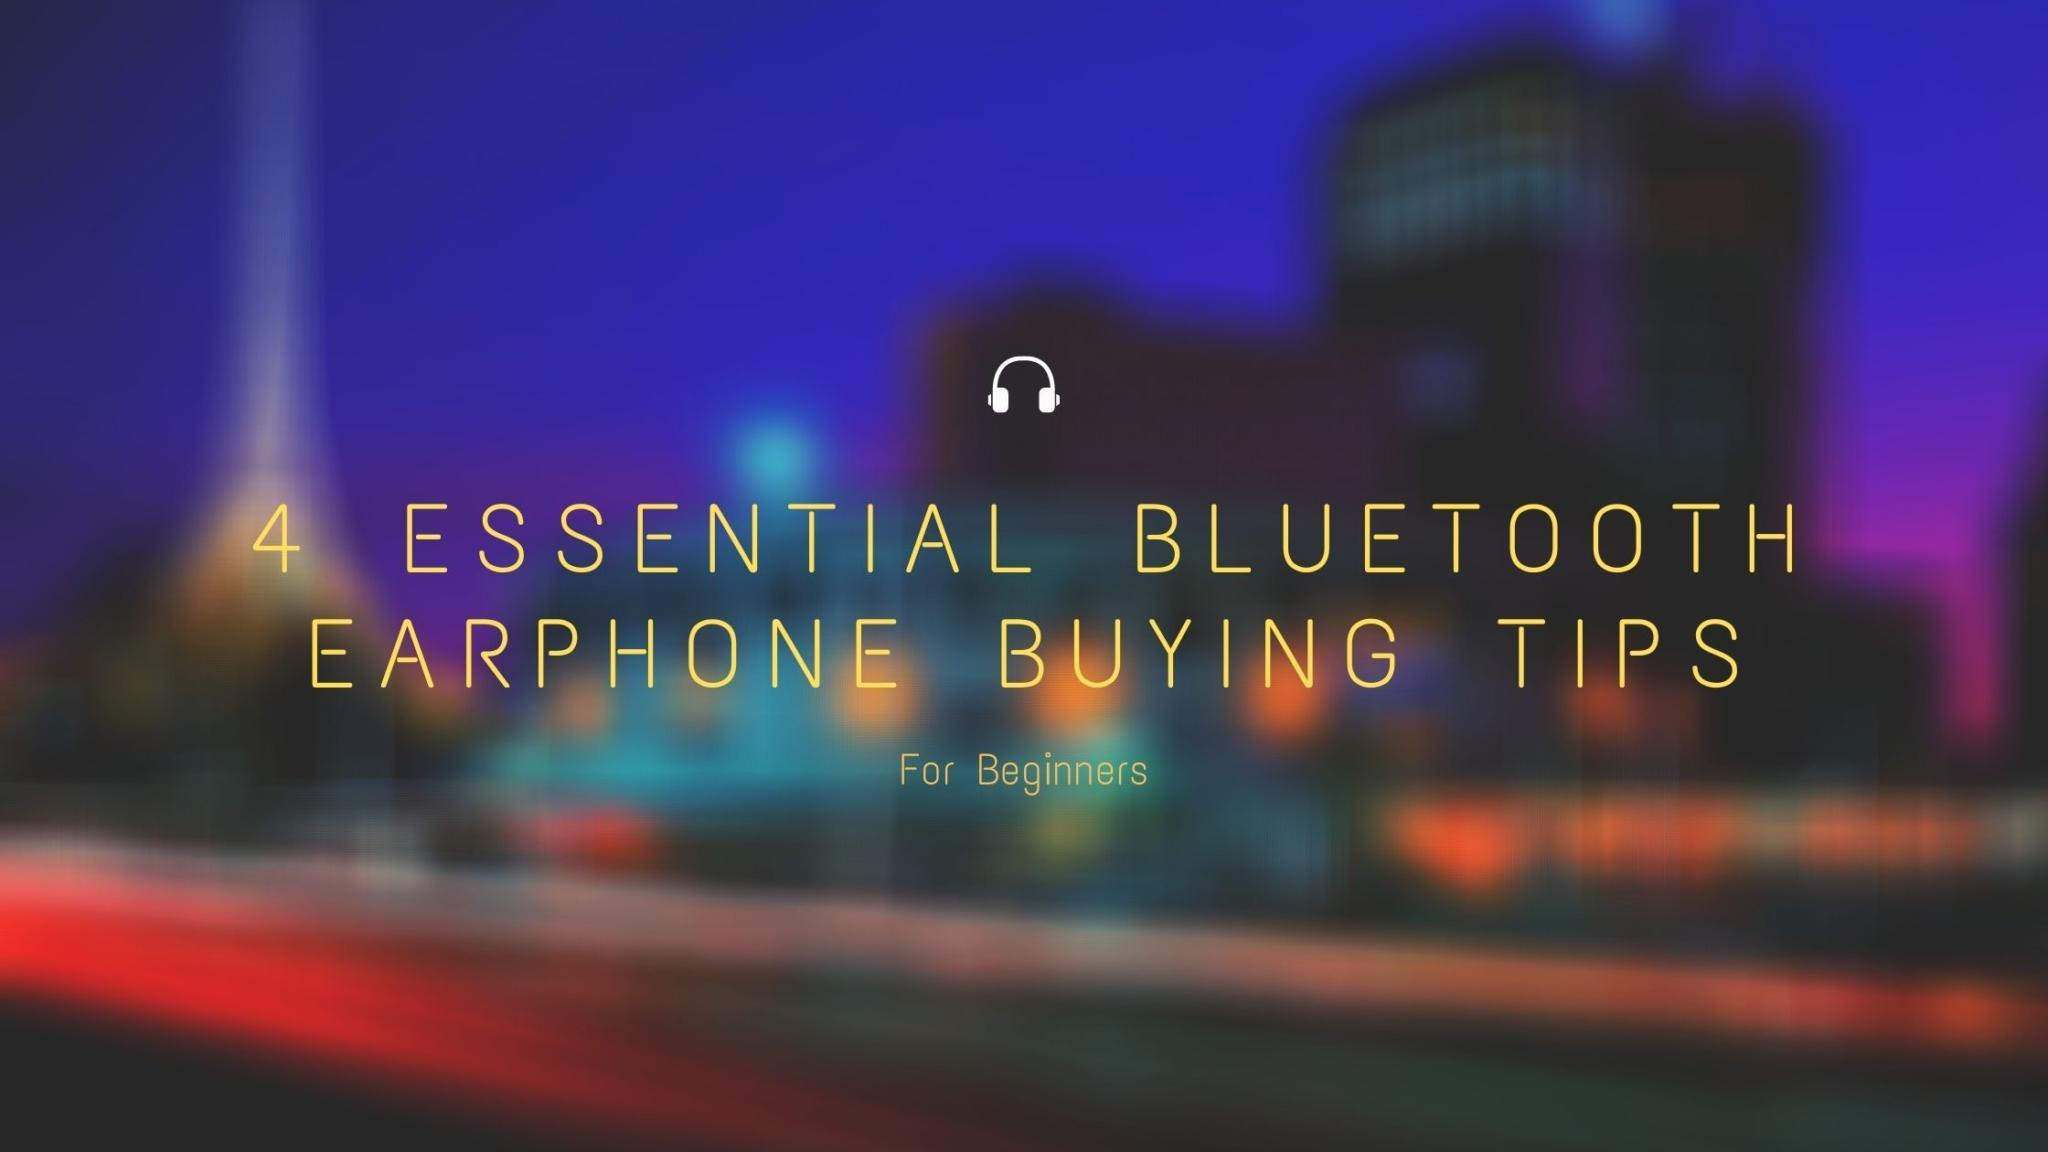 4 Essential Bluetooth Earphone Buying Tips